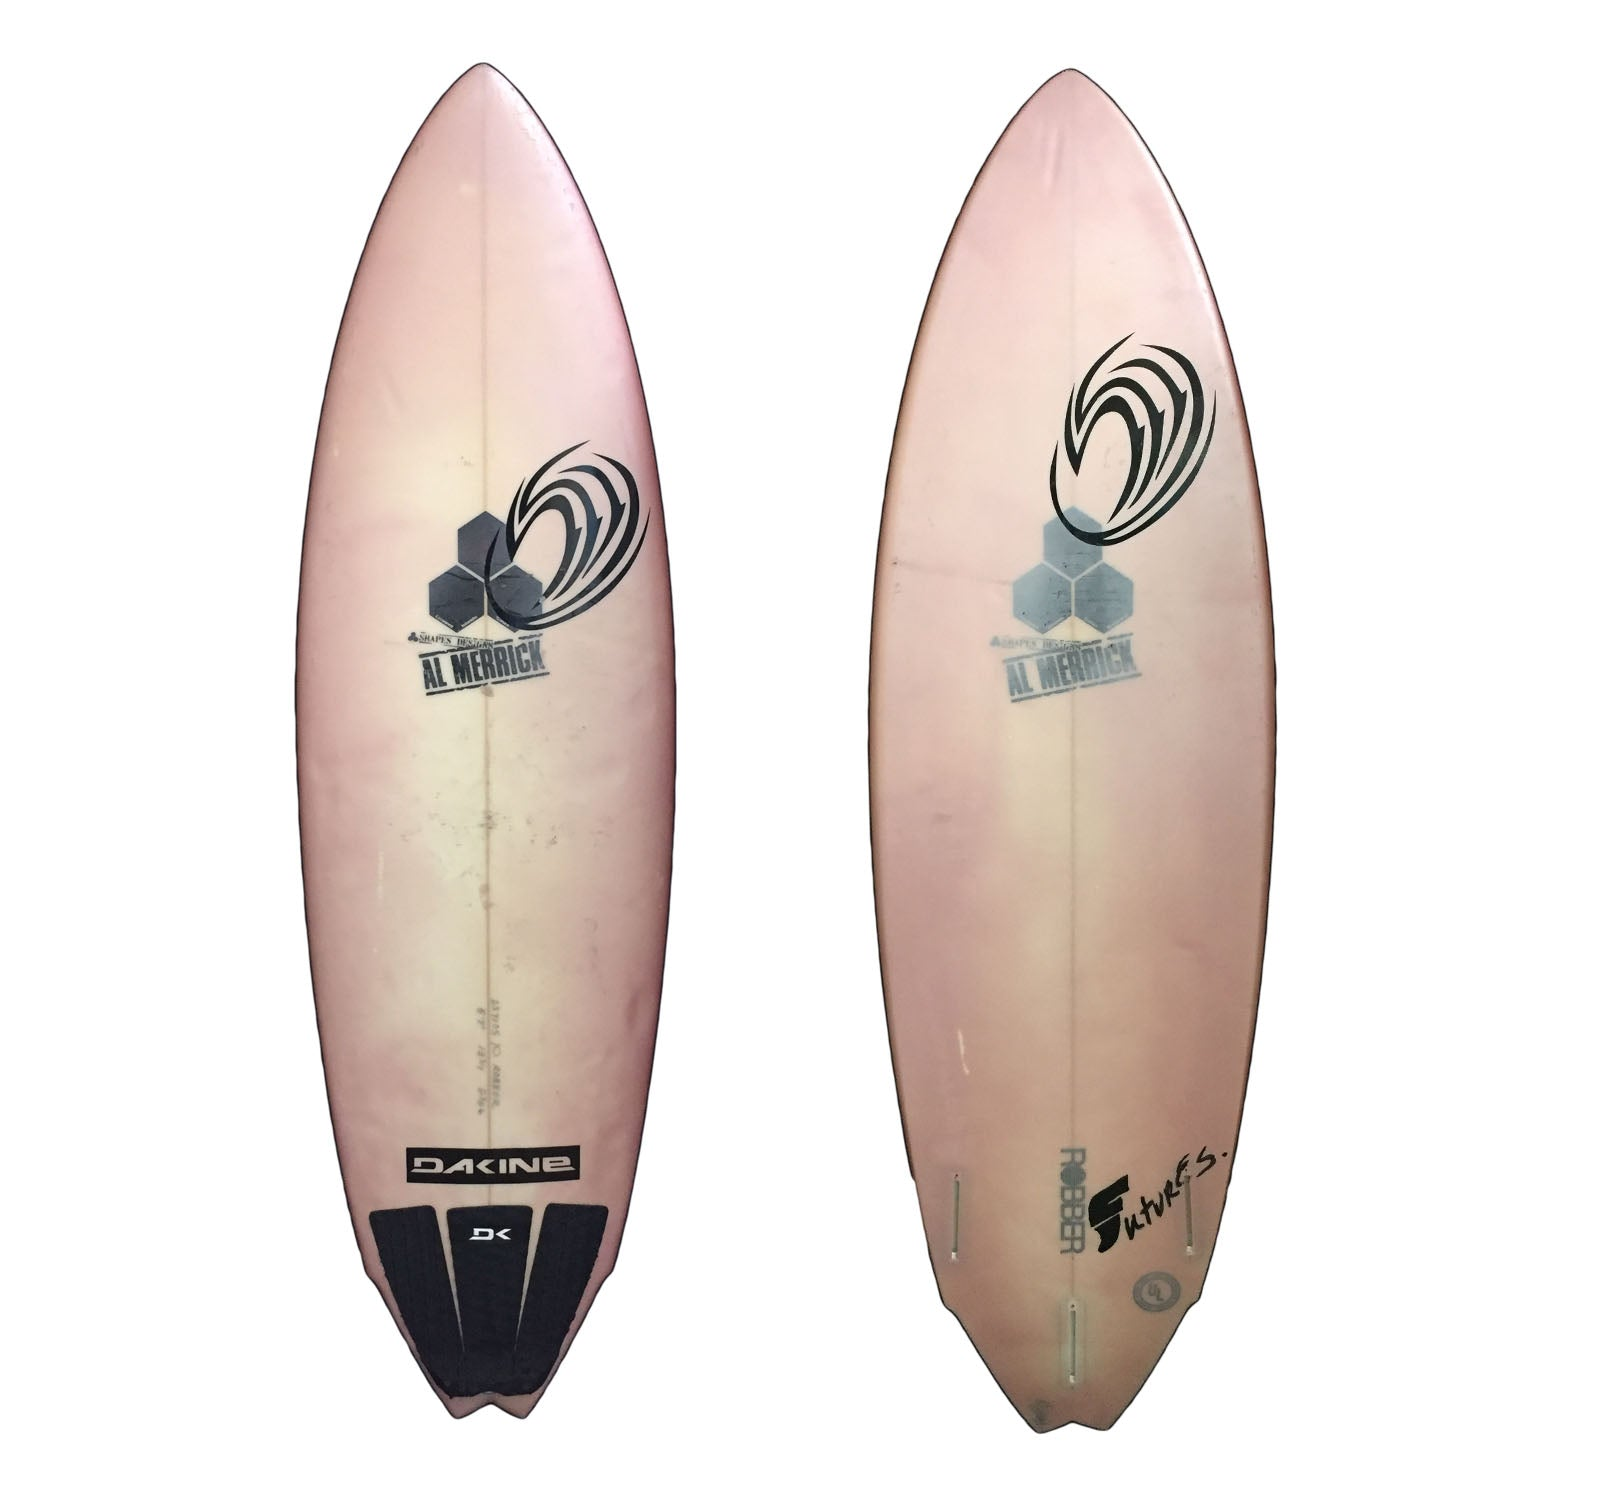 Channel Islands Robber 5'7 Used Surfboard